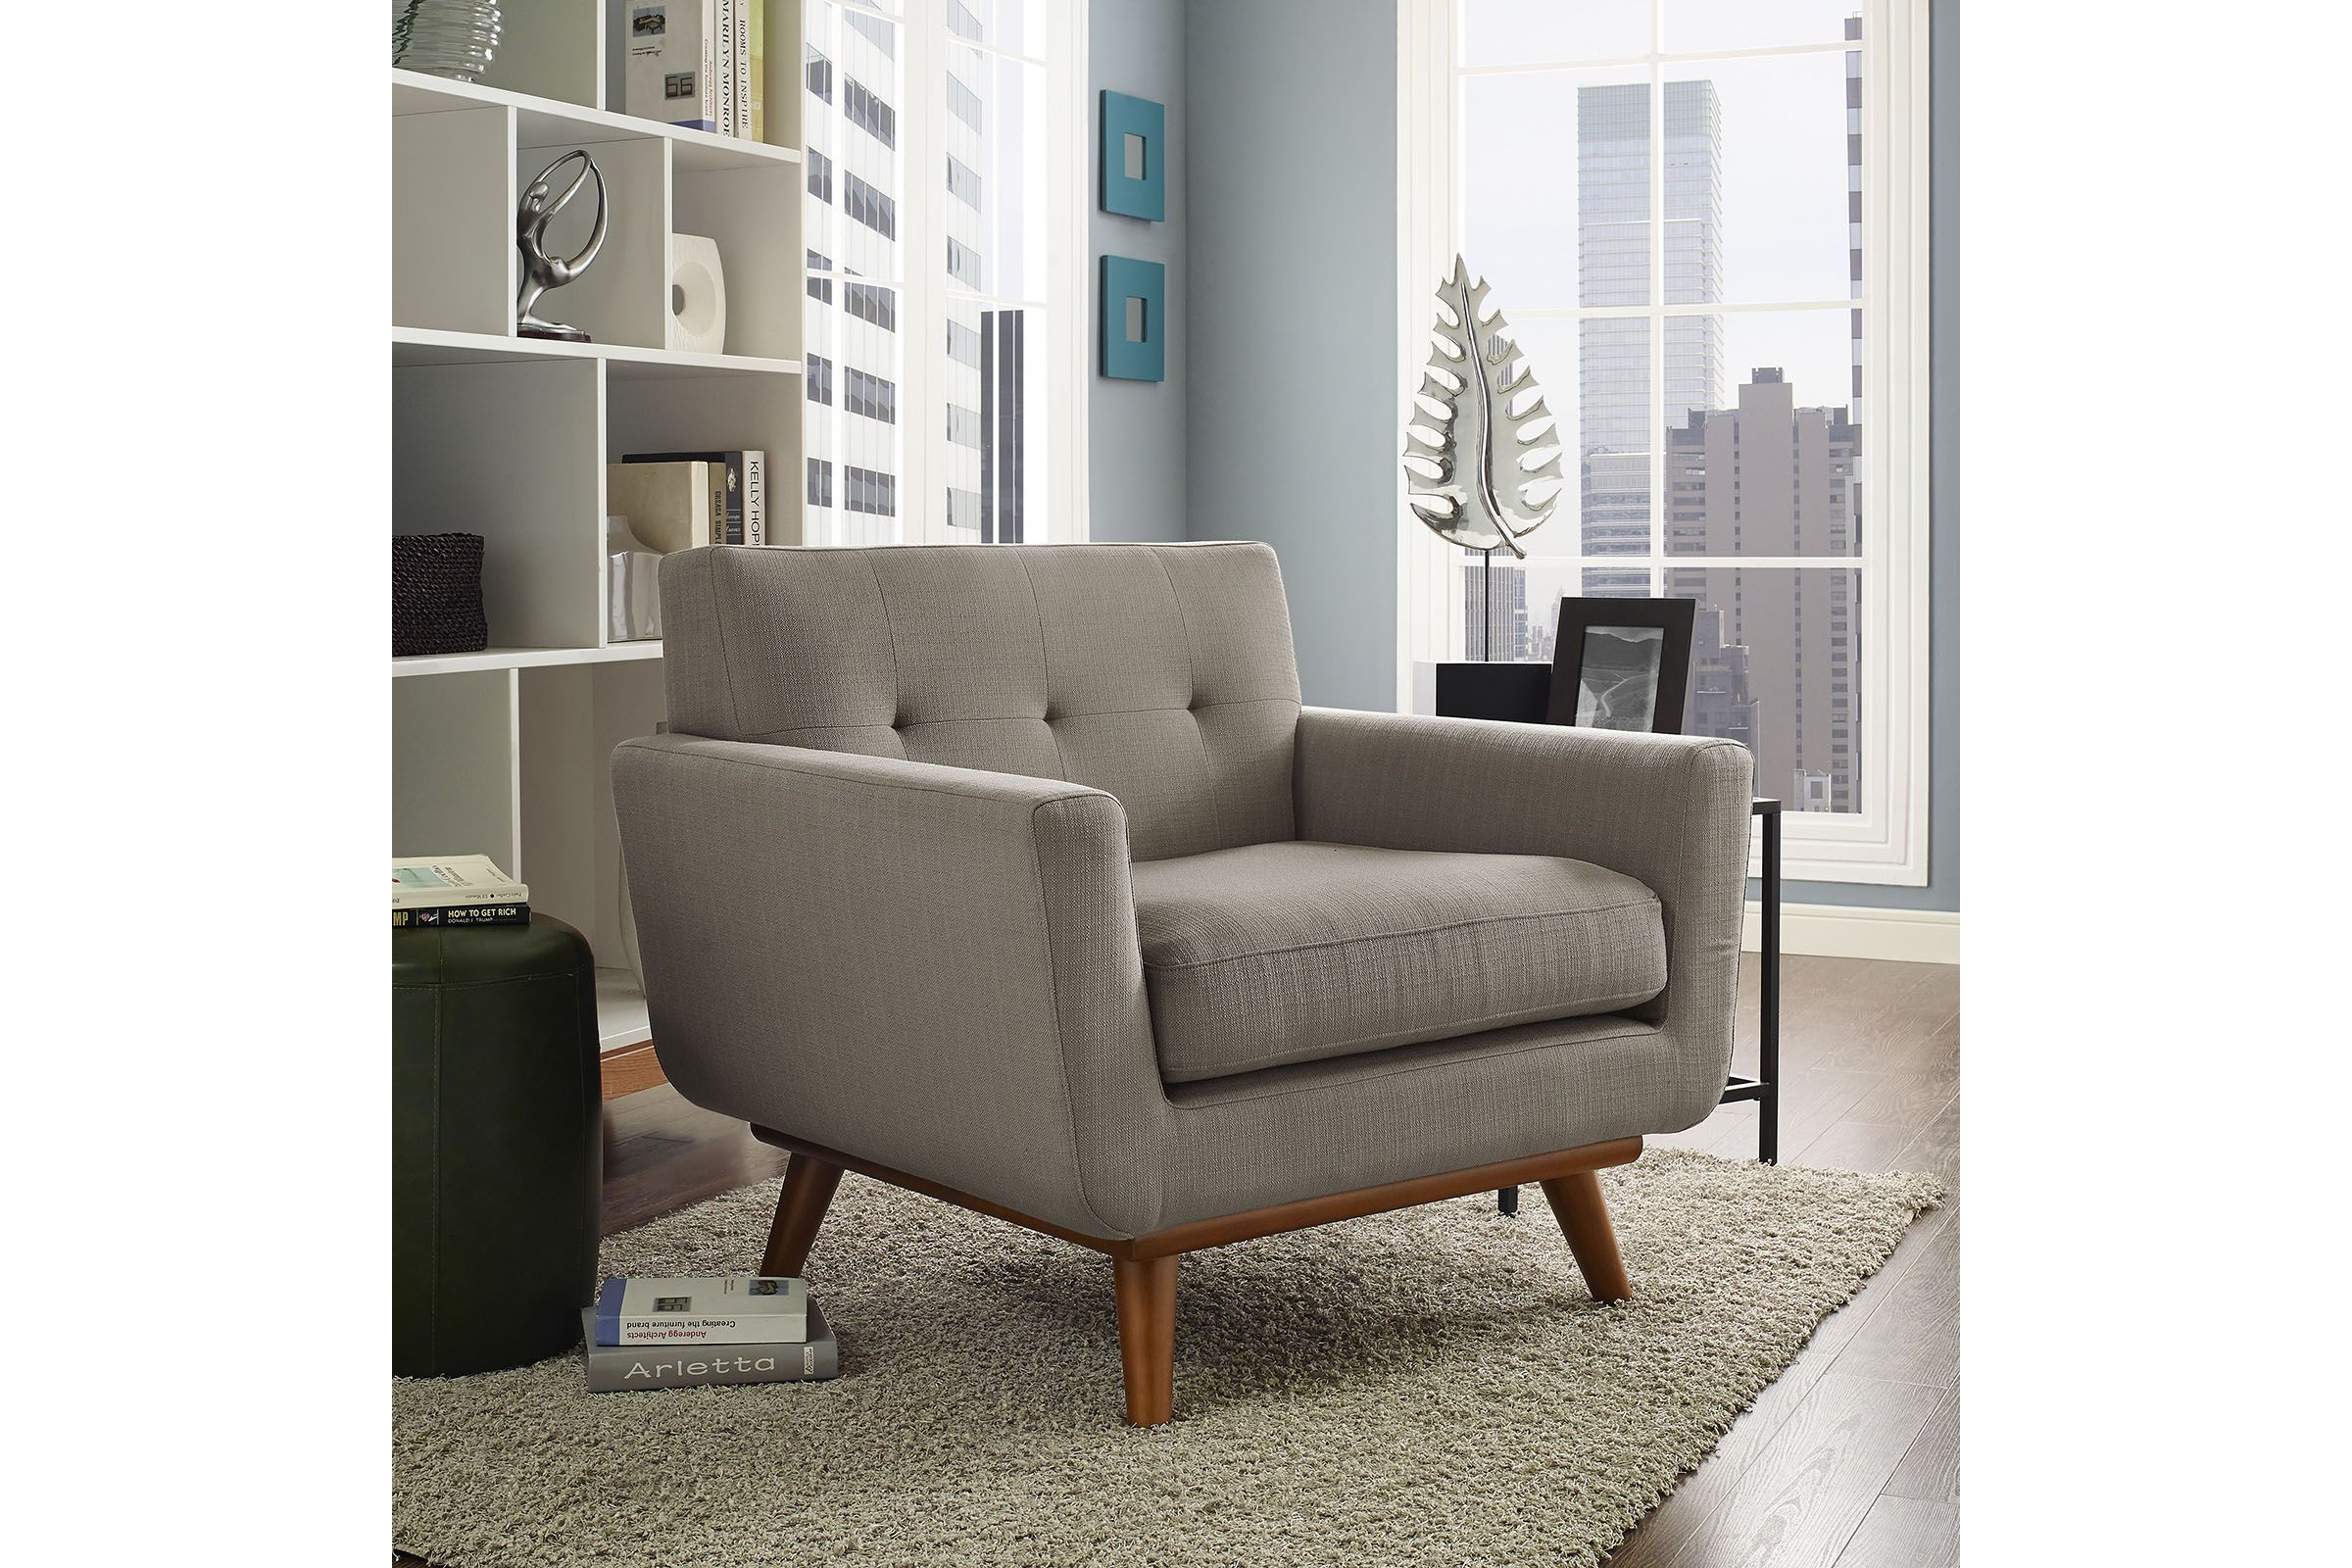 Engage Upholstered Armchair In Granite By Modway Fabric Armchairs Furniture Armchair